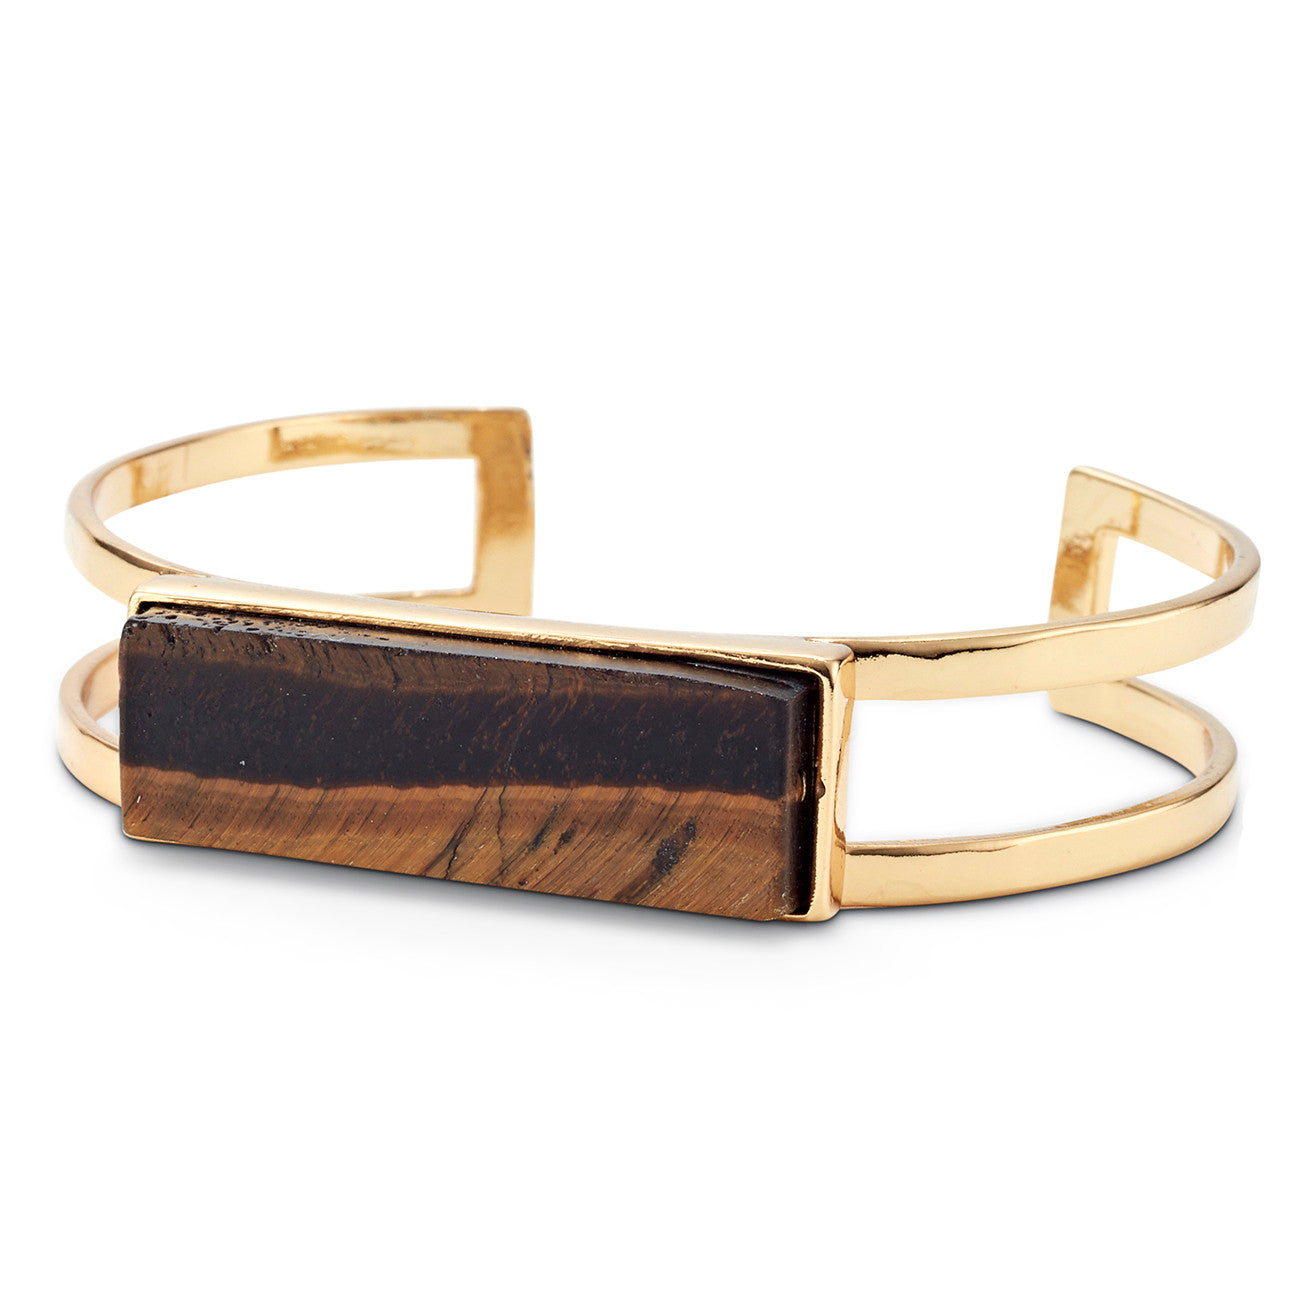 Lizzie Cuff by Jenny Bird in Gold with Tiger's Eye Stone